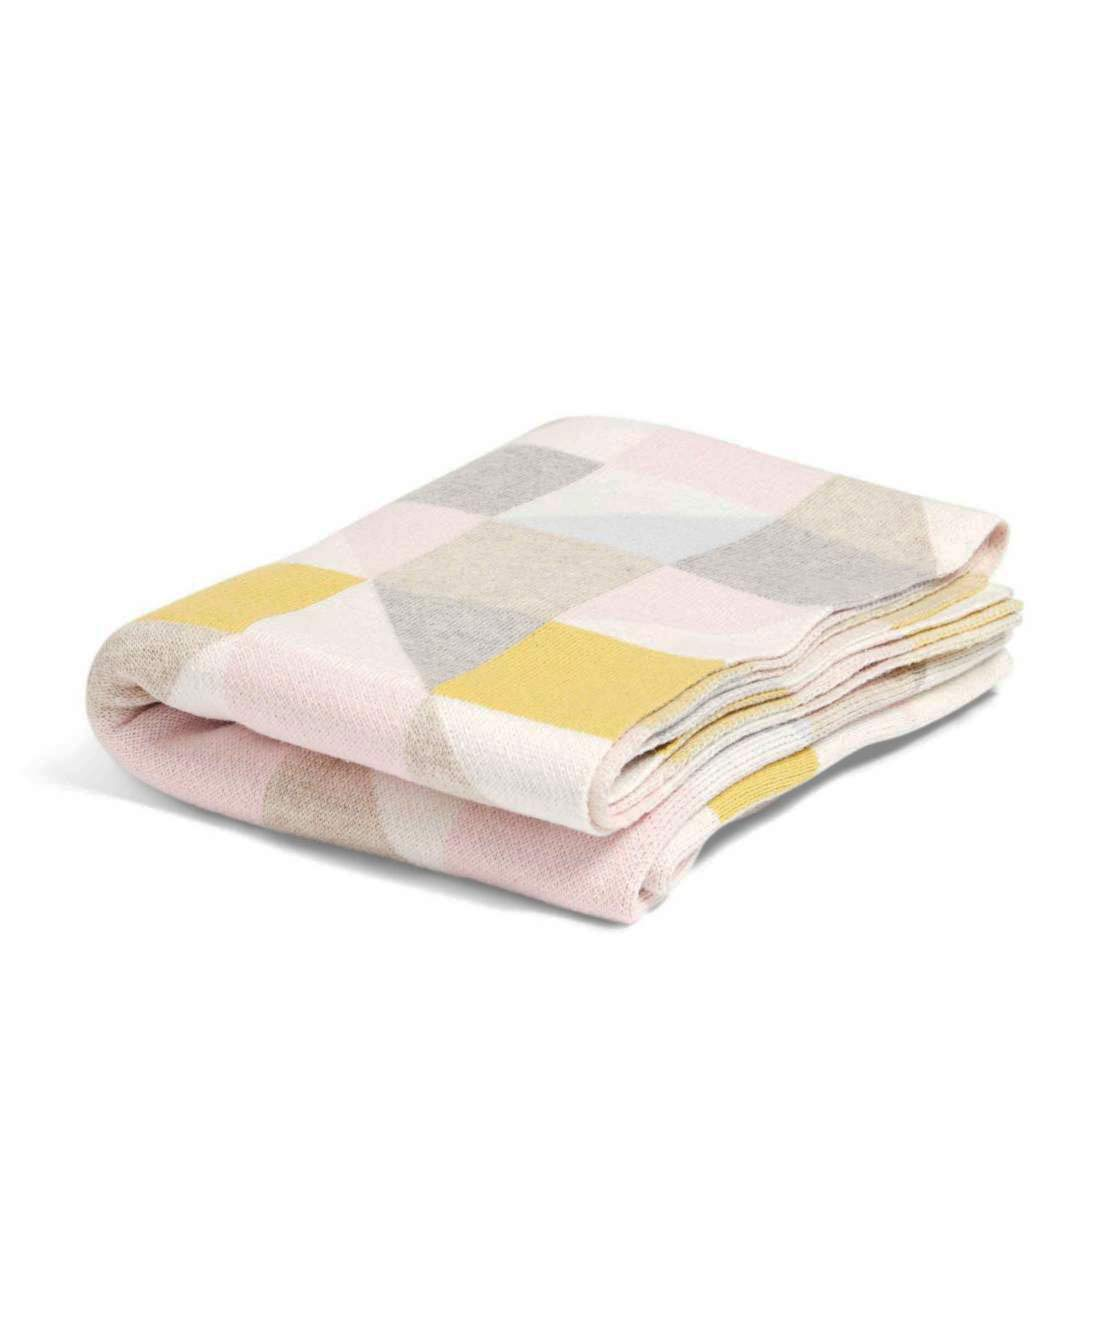 Crib Spot Nursery Bedding Mamas /& Papas Knitted Blanket for Pram Bed Moses